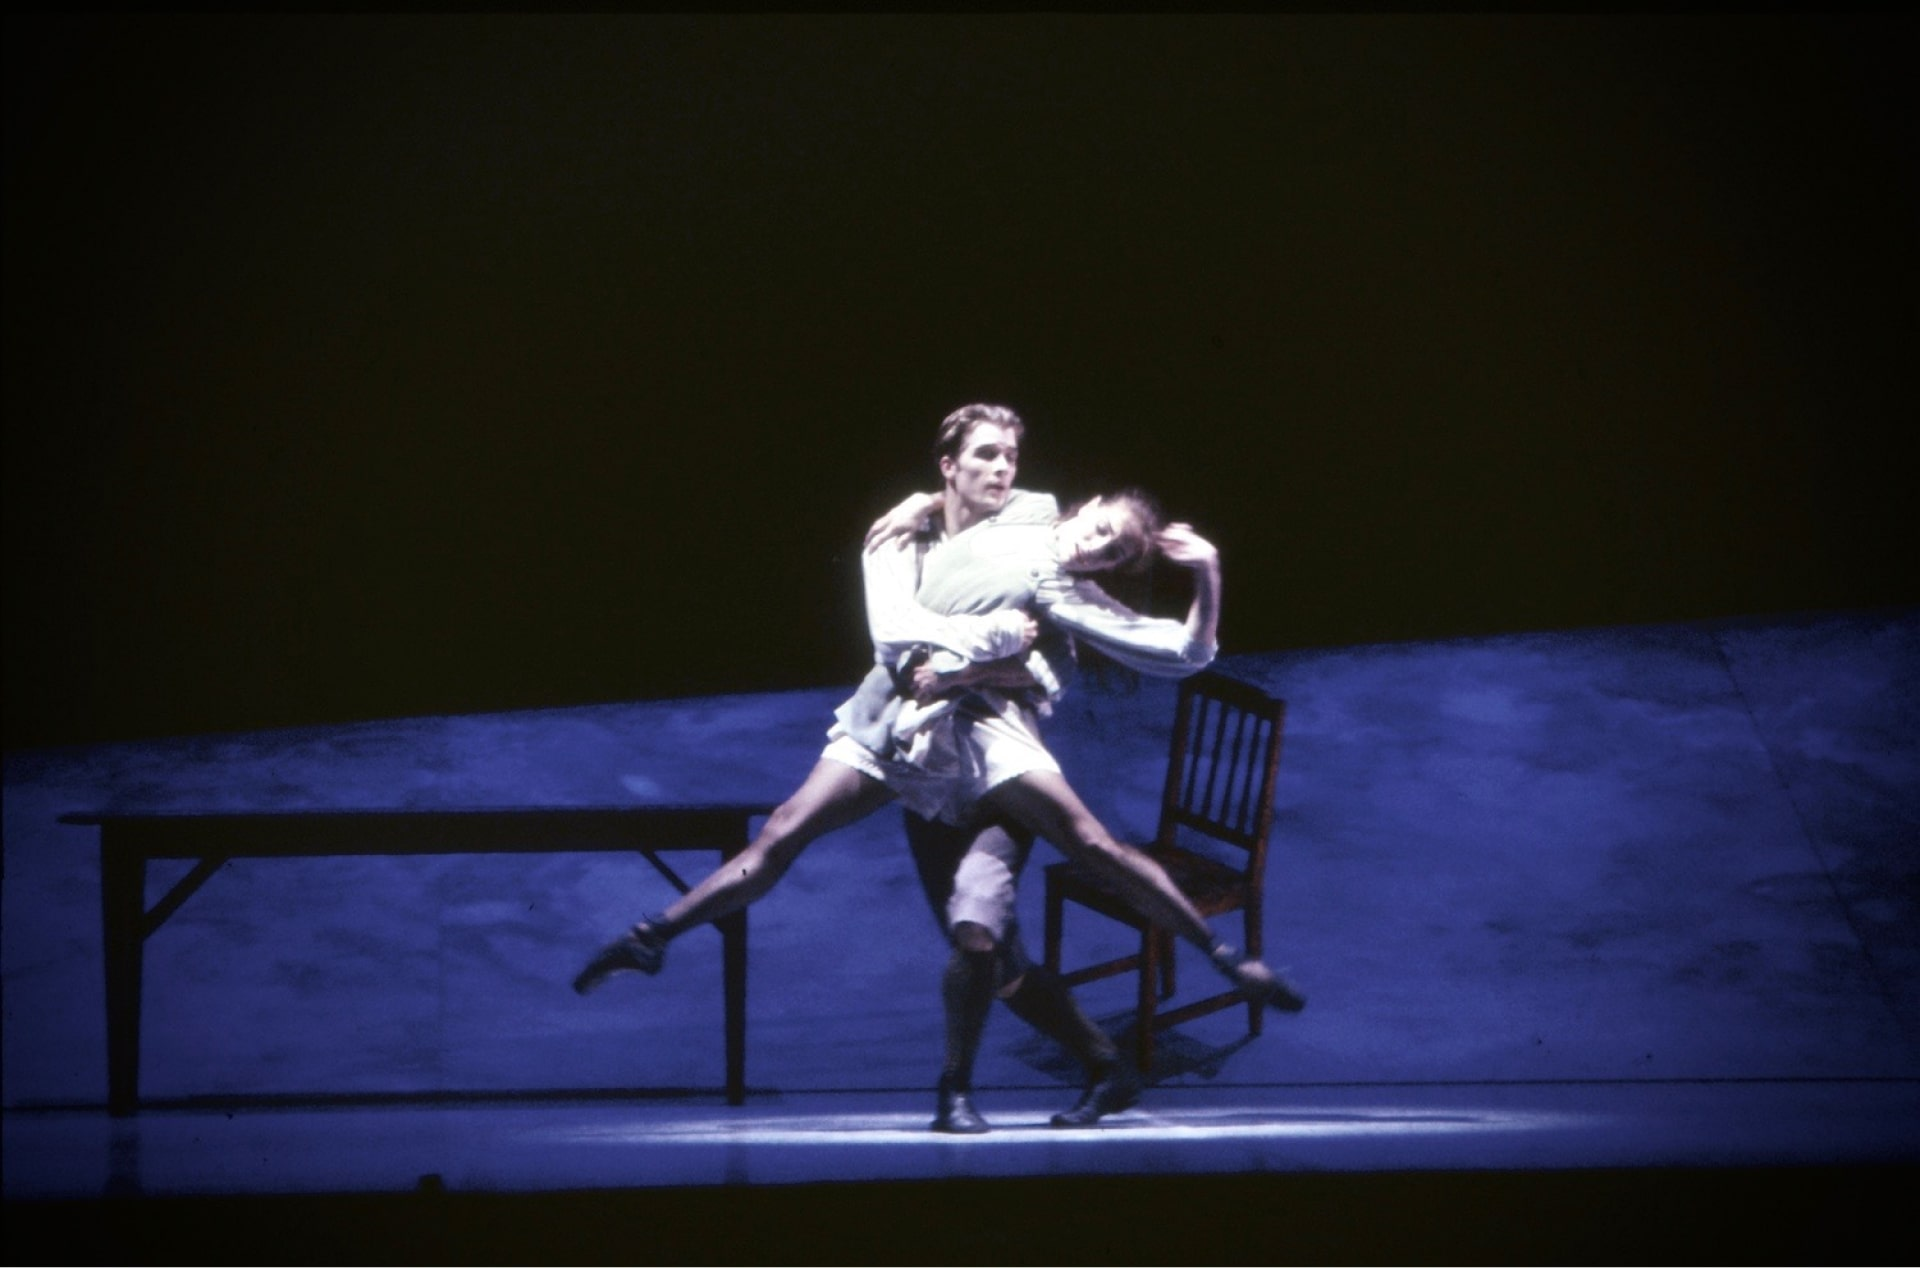 Dancer holds leaping ballerina in front of table, near chair on raked platform.